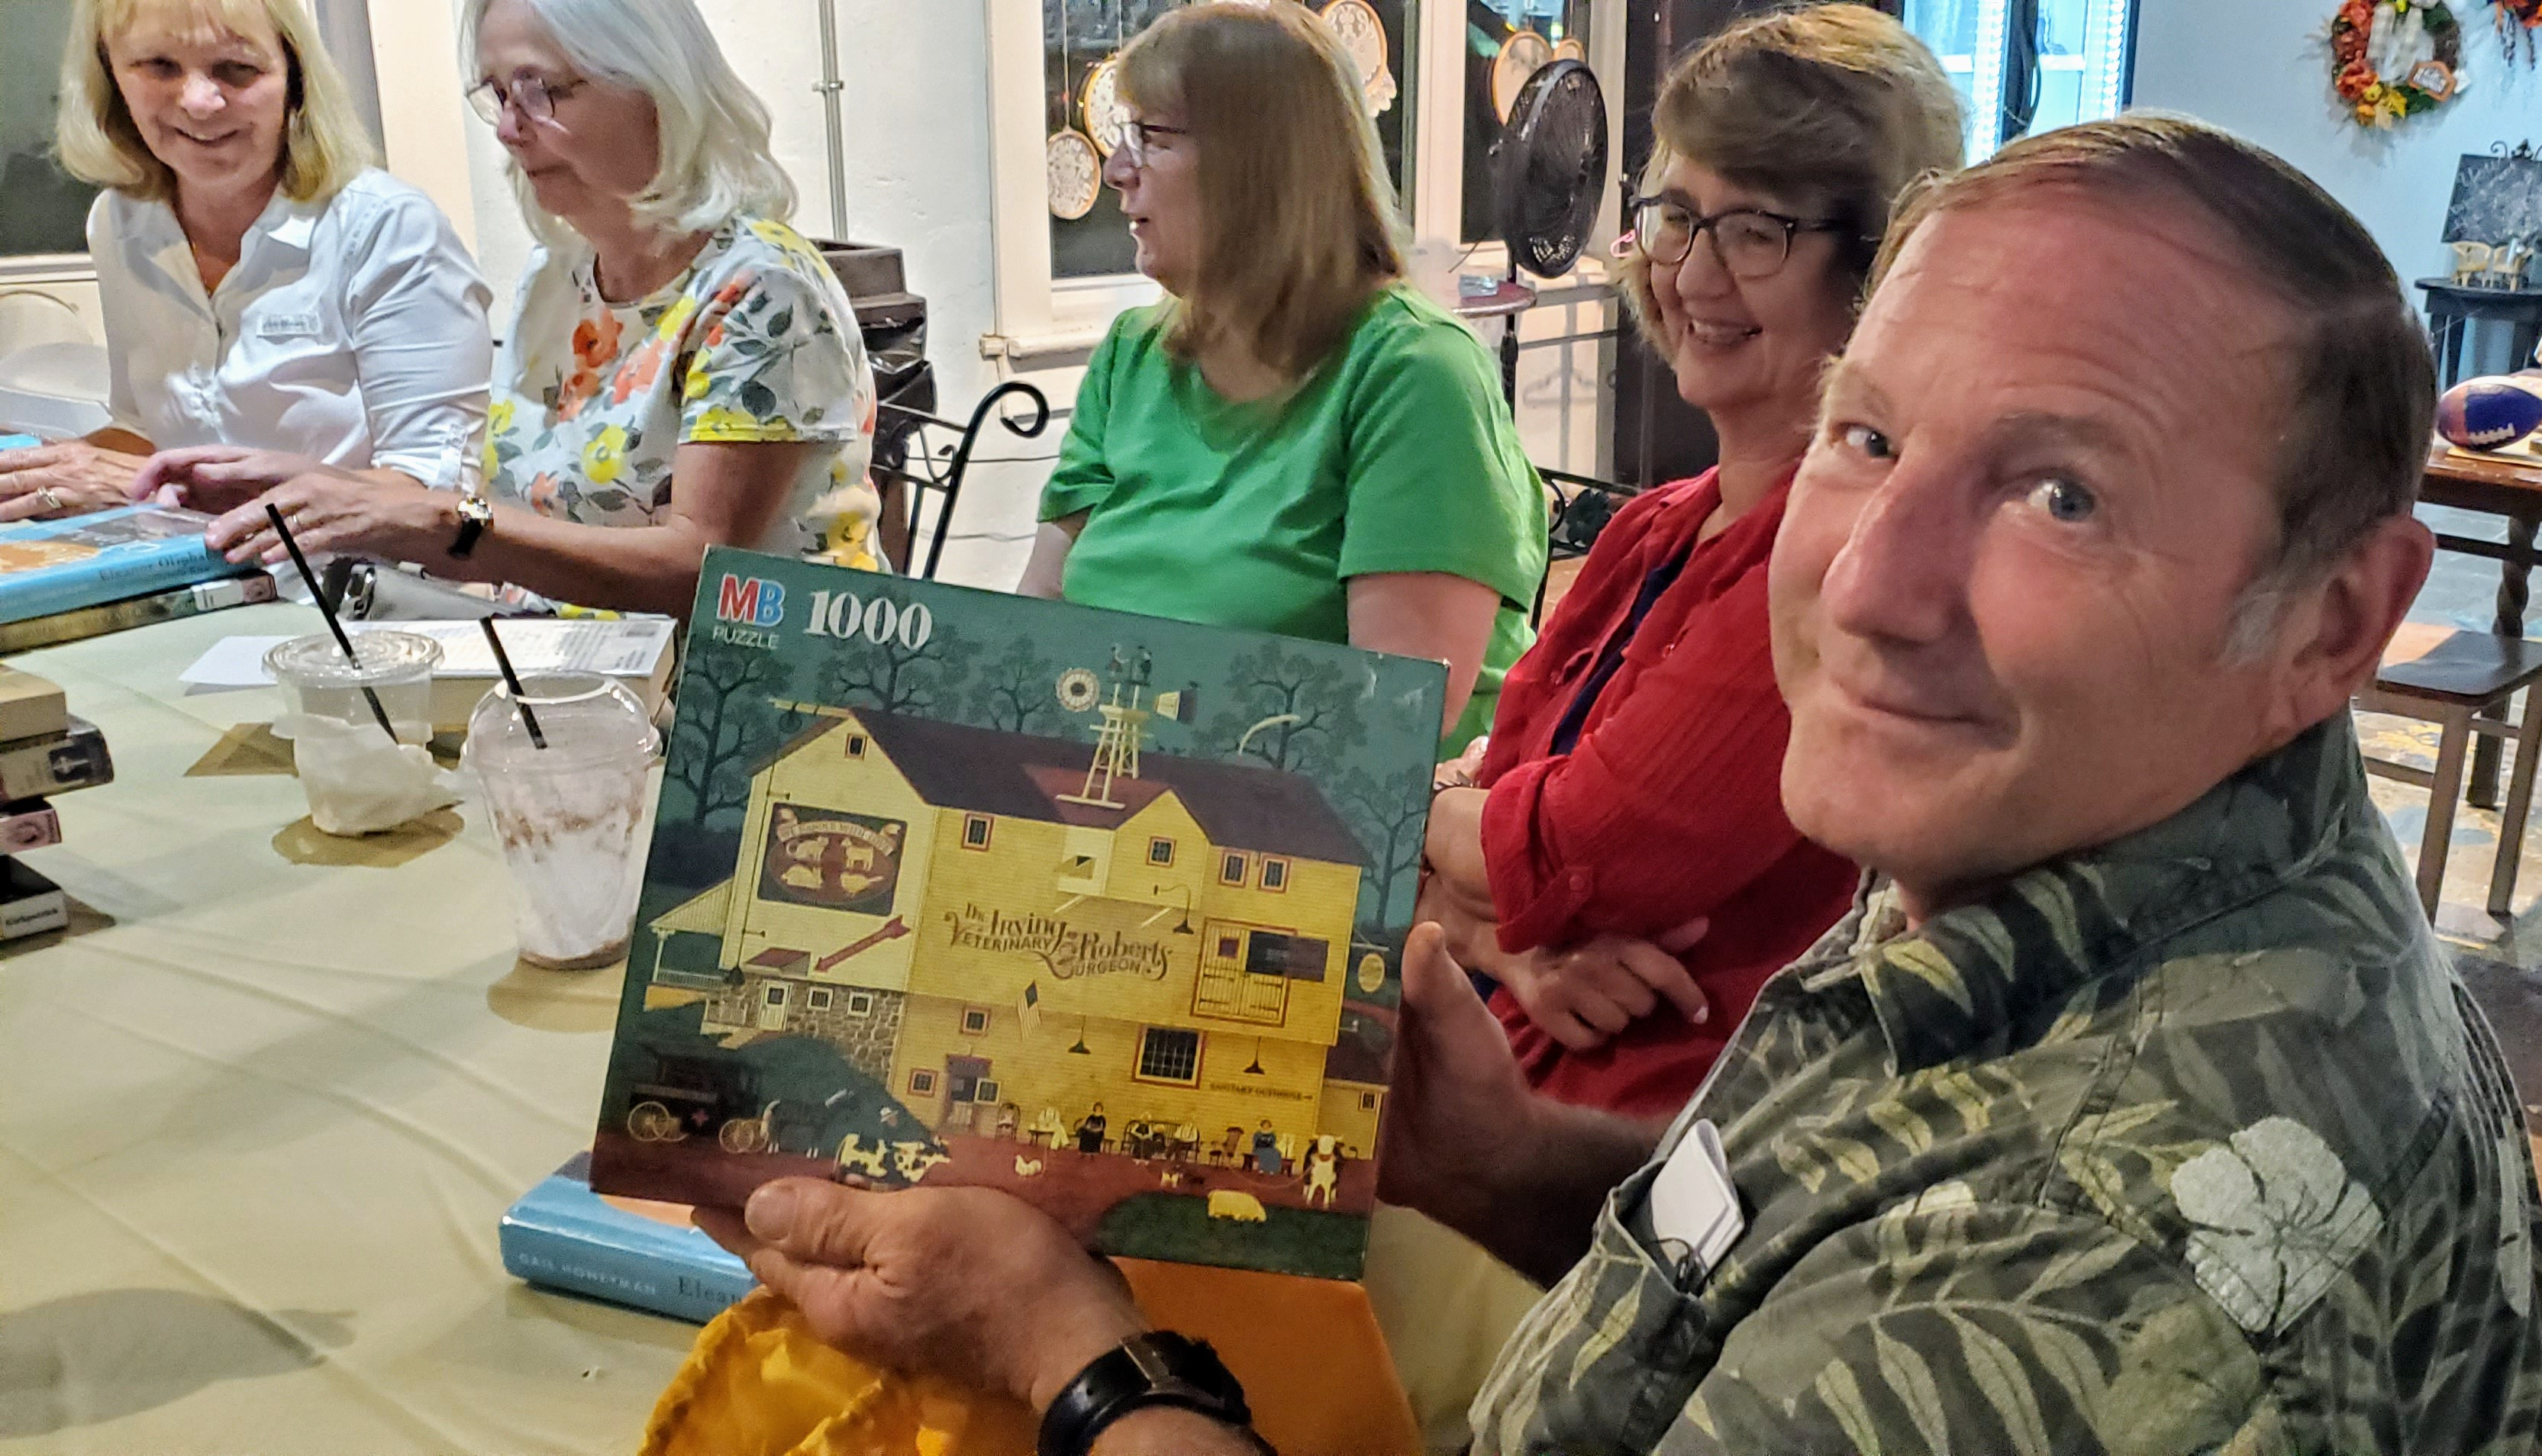 12 people attended the August 'Around Town' Book Club meeting held at Two Hands Coffee. Dr. Fred Brown was presented with a special door prize at the end of the meeting.